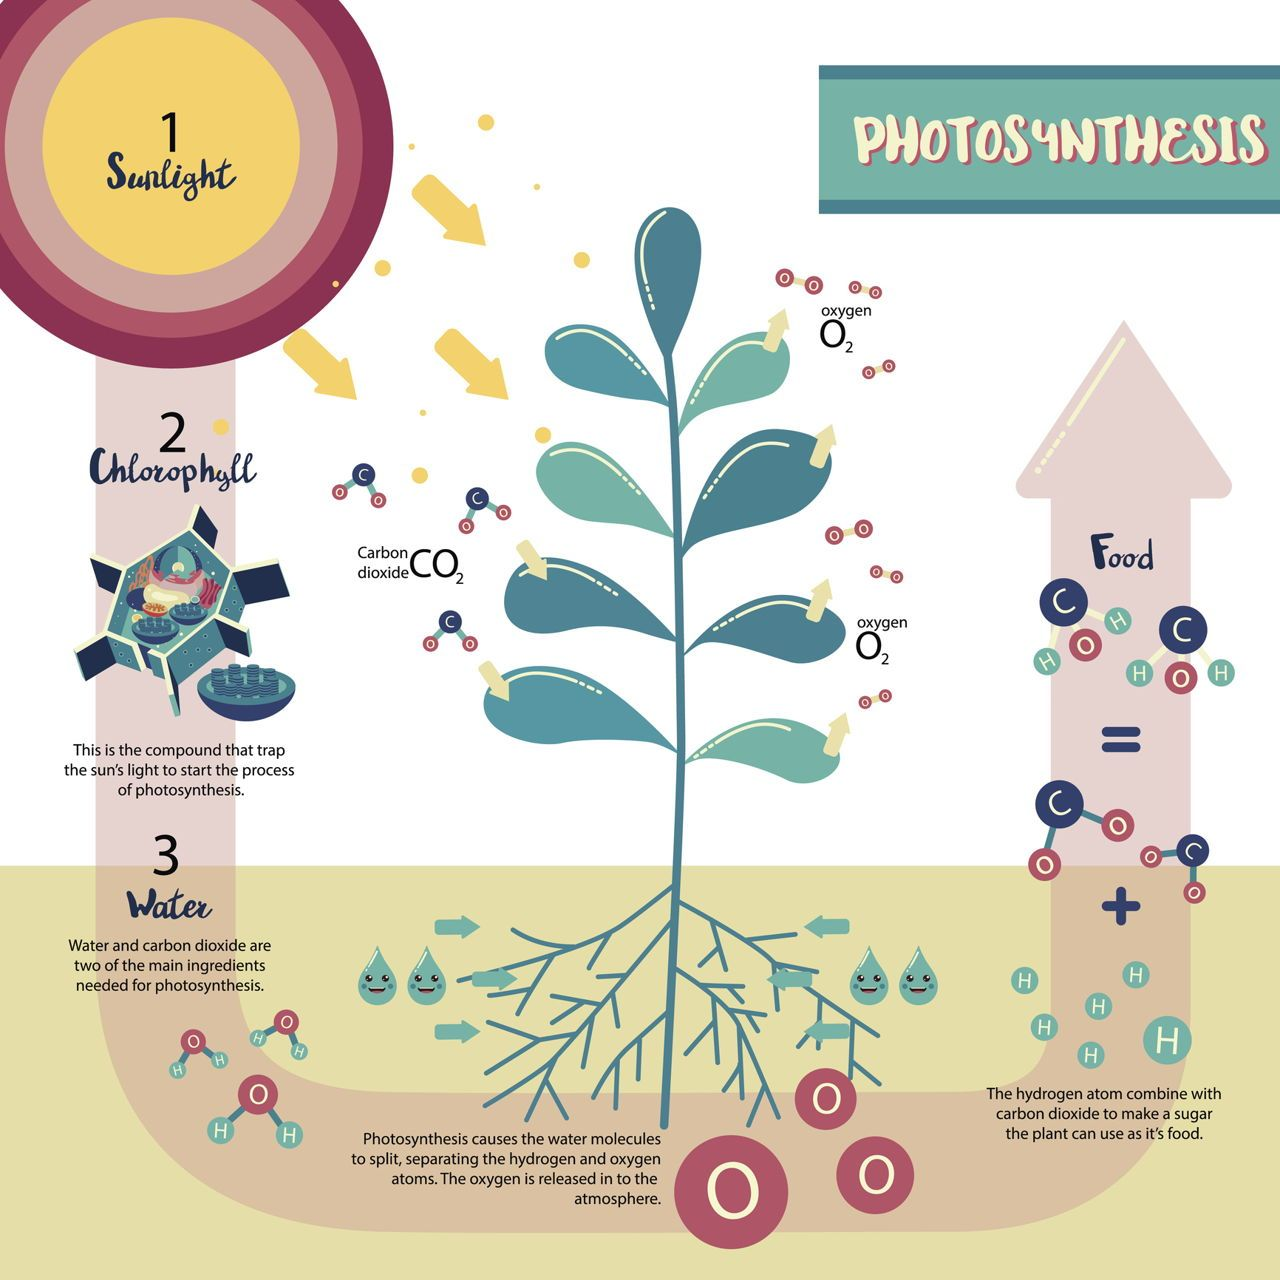 Photosynthesis Plant Cell Diagram | Photosynthesis, Plant ...